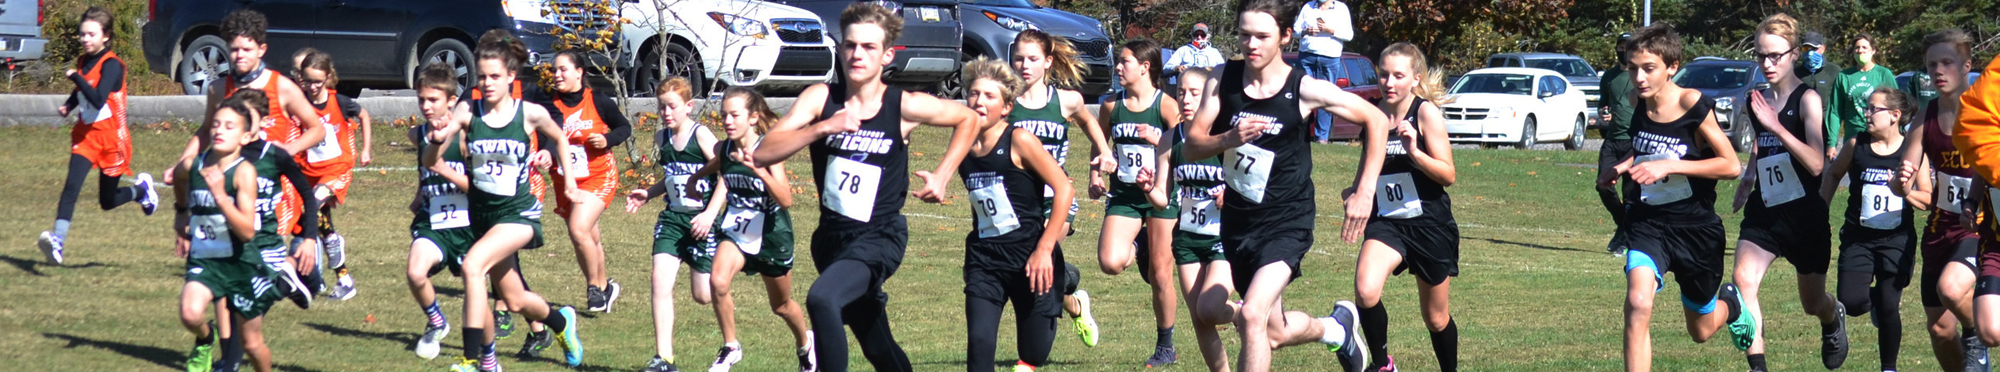 Coudersport students running cross country